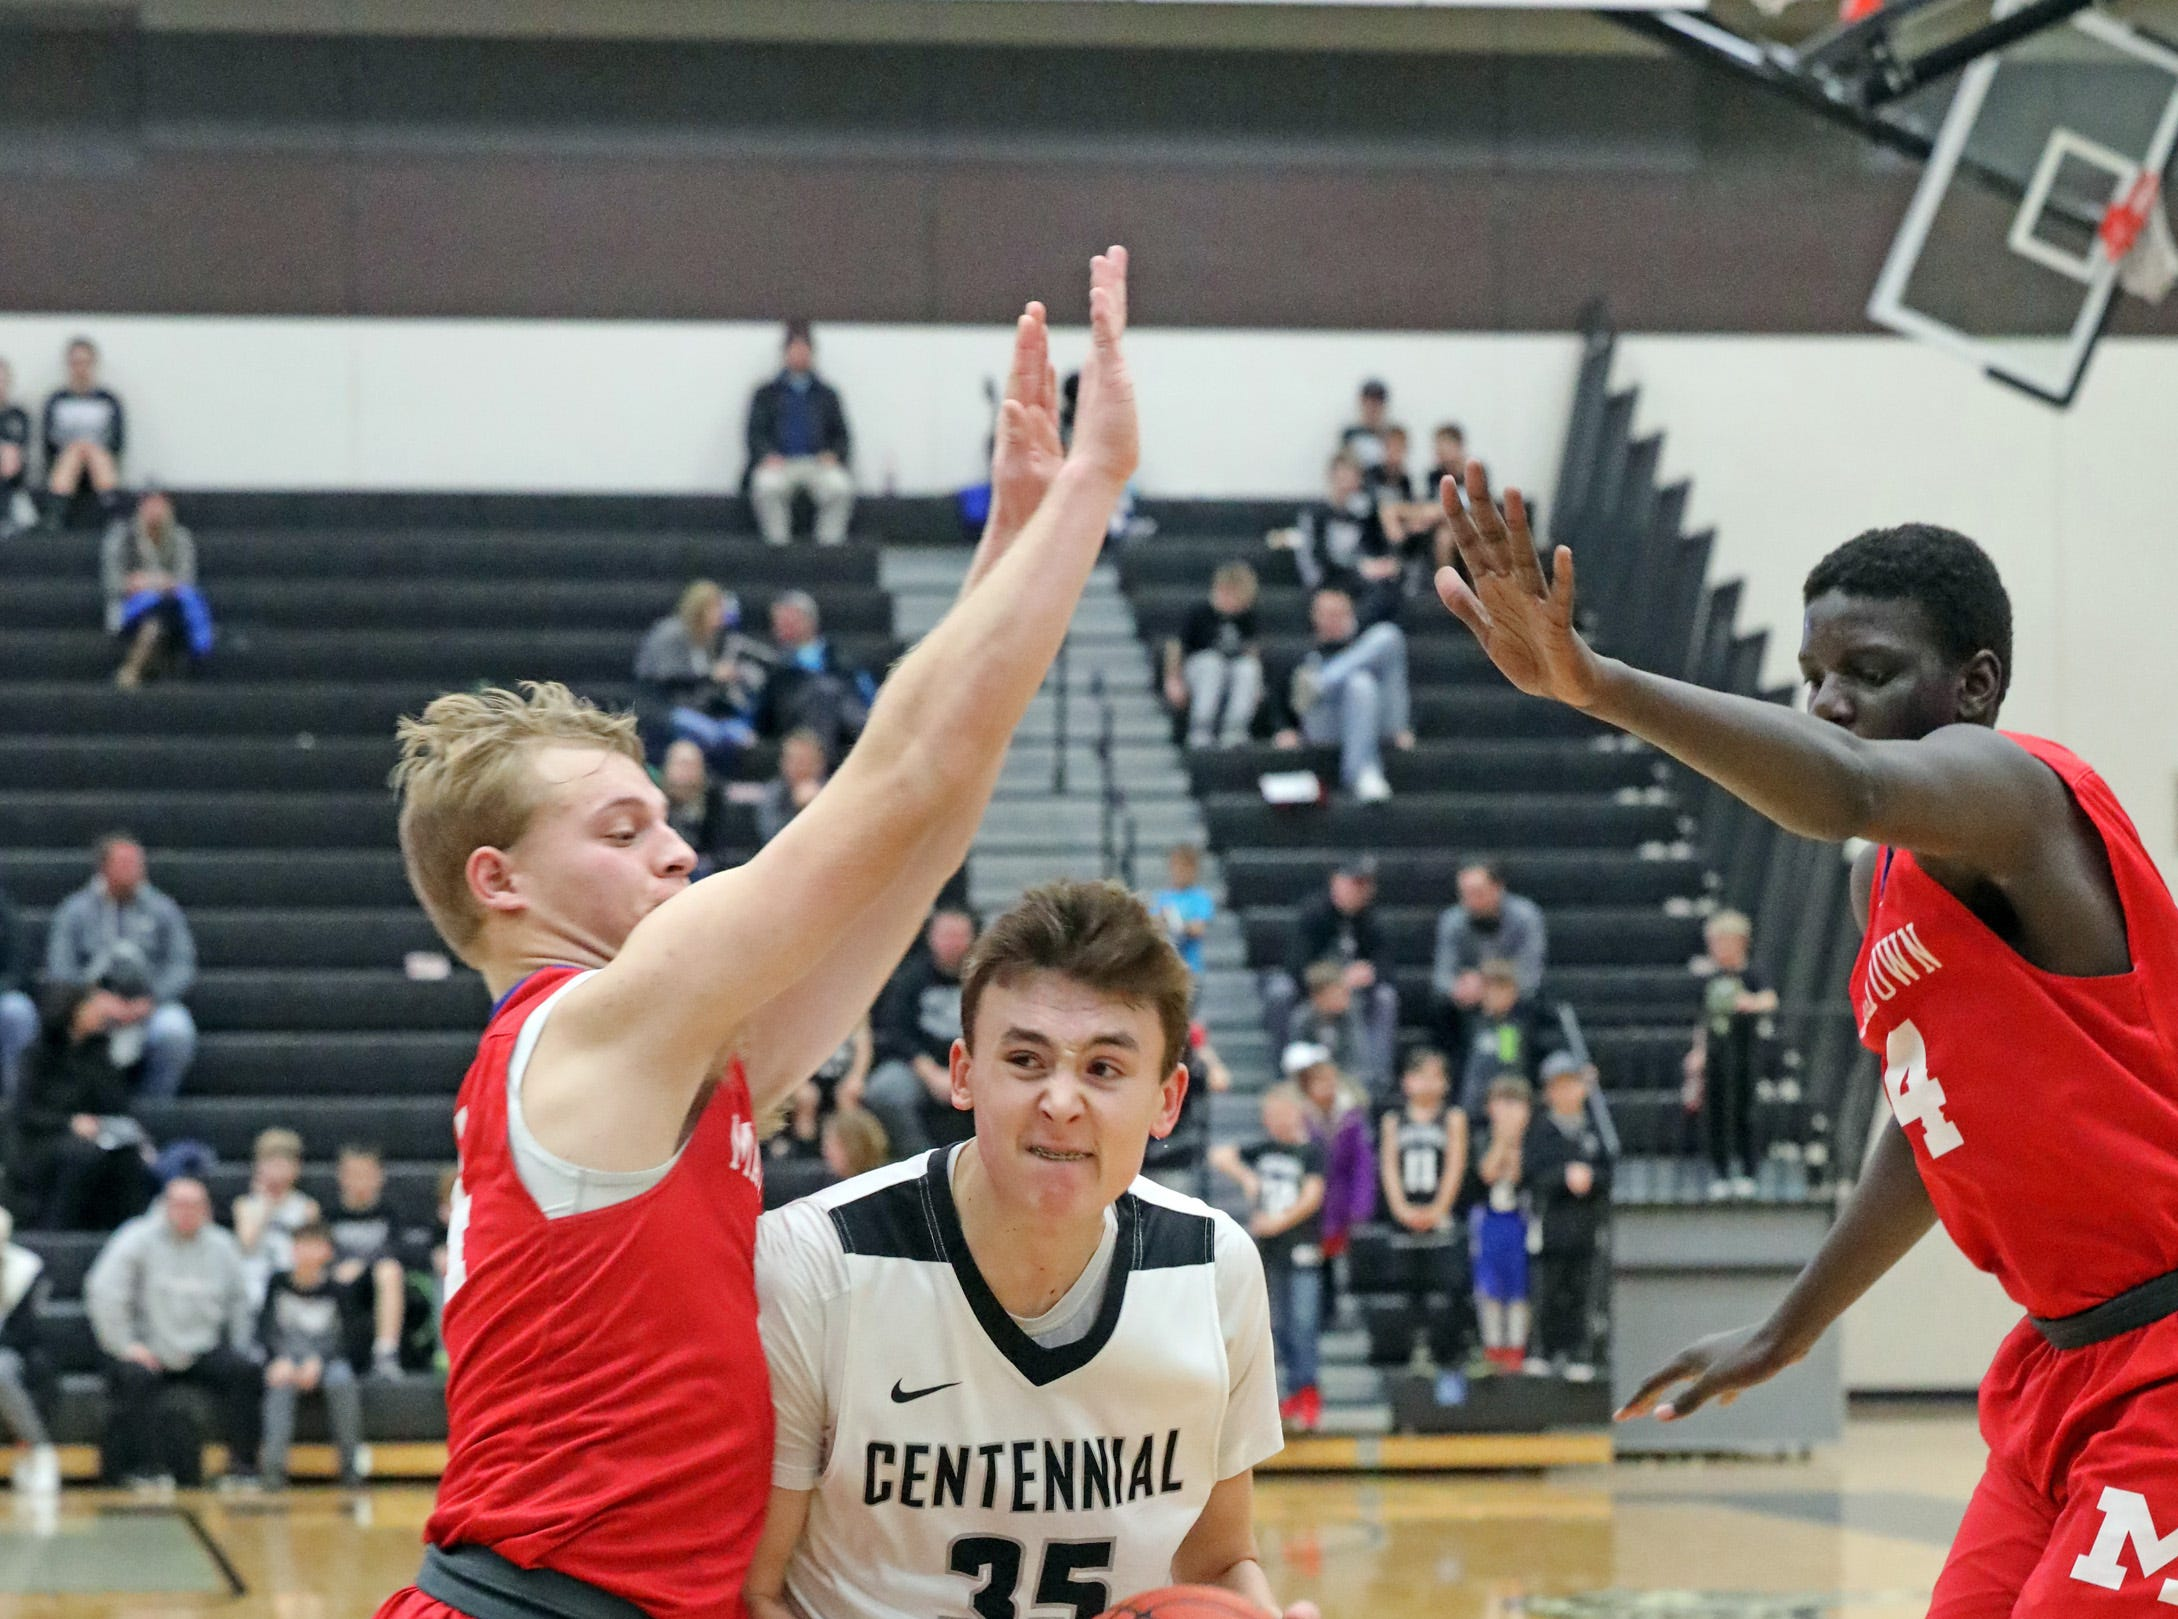 Ankeny Centennial junior Cody McCullough (35) splits through the defense as the Marshalltown Bobcats compete against the Ankeny Centennial Jaguars in high school boys basketball on Tuesday, Jan. 8, 2019 at Ankeny Centennial High. Marshalltown rallied to win 63 to 60 in double overtime.